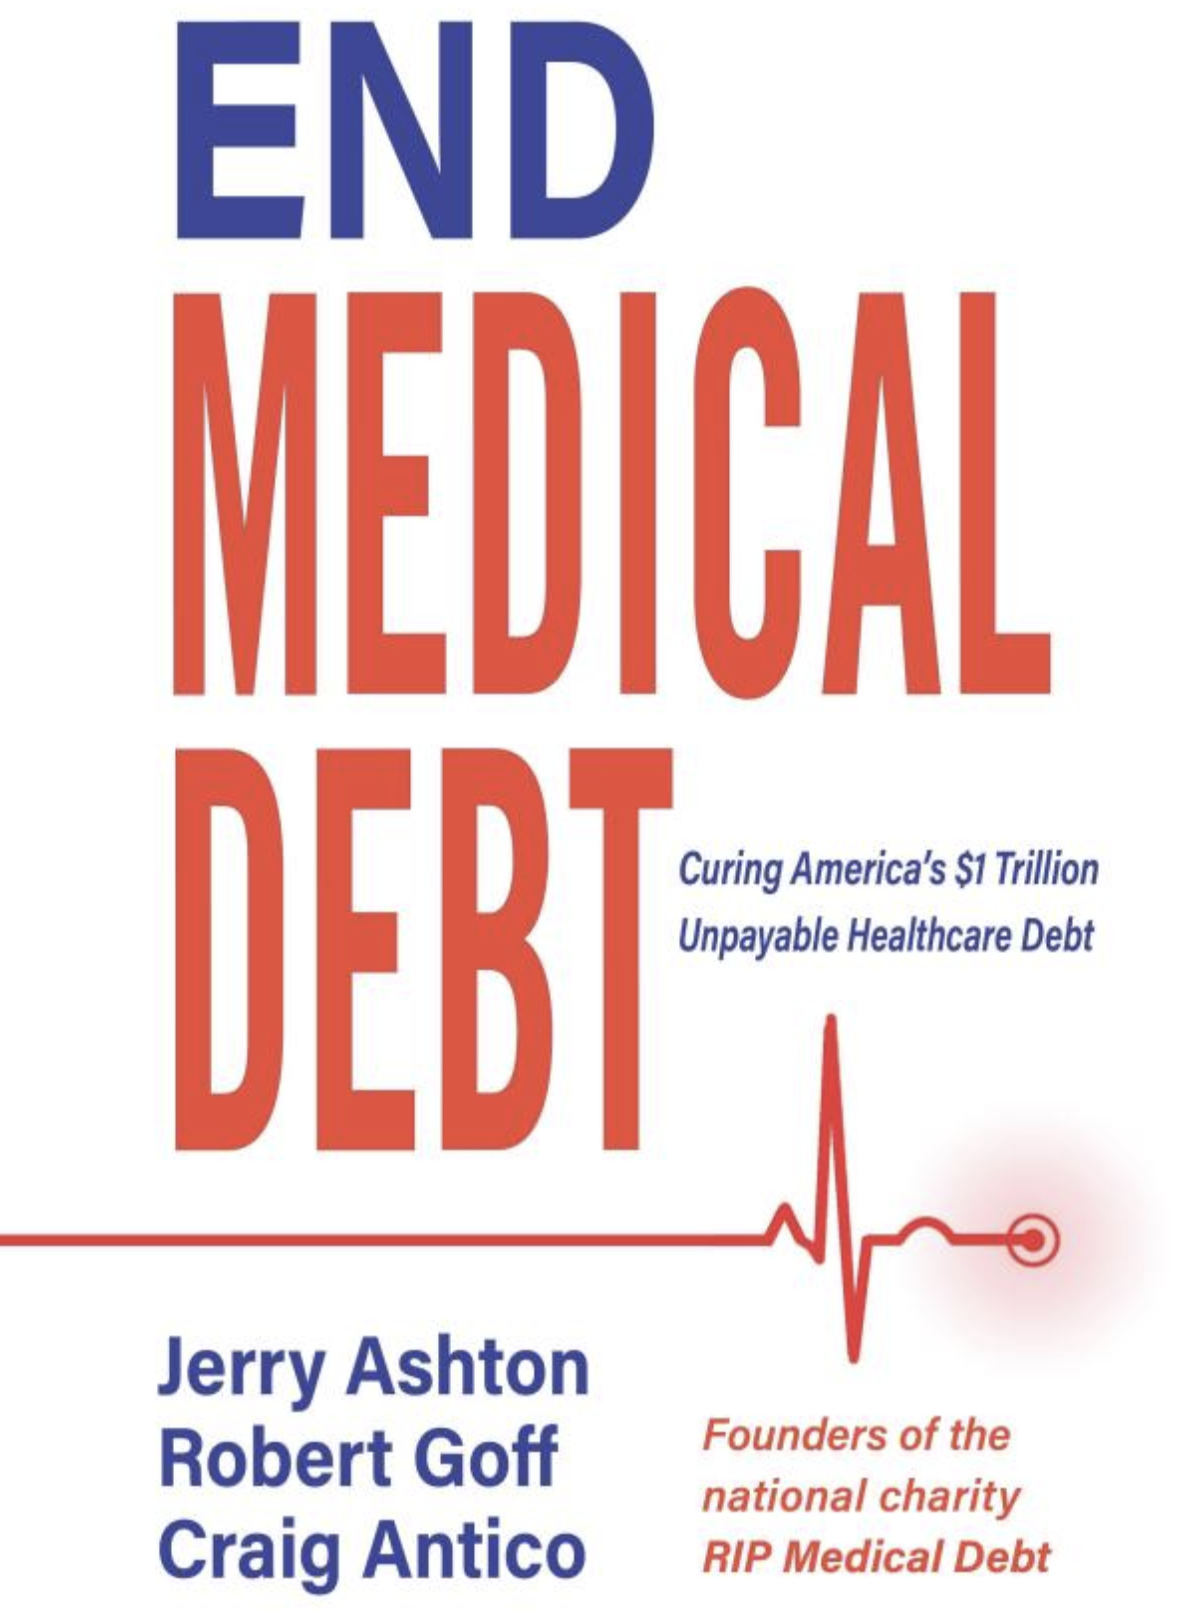 End Medical Debt: Curing America's $1 Trillion Unpayable Healthcare Debt